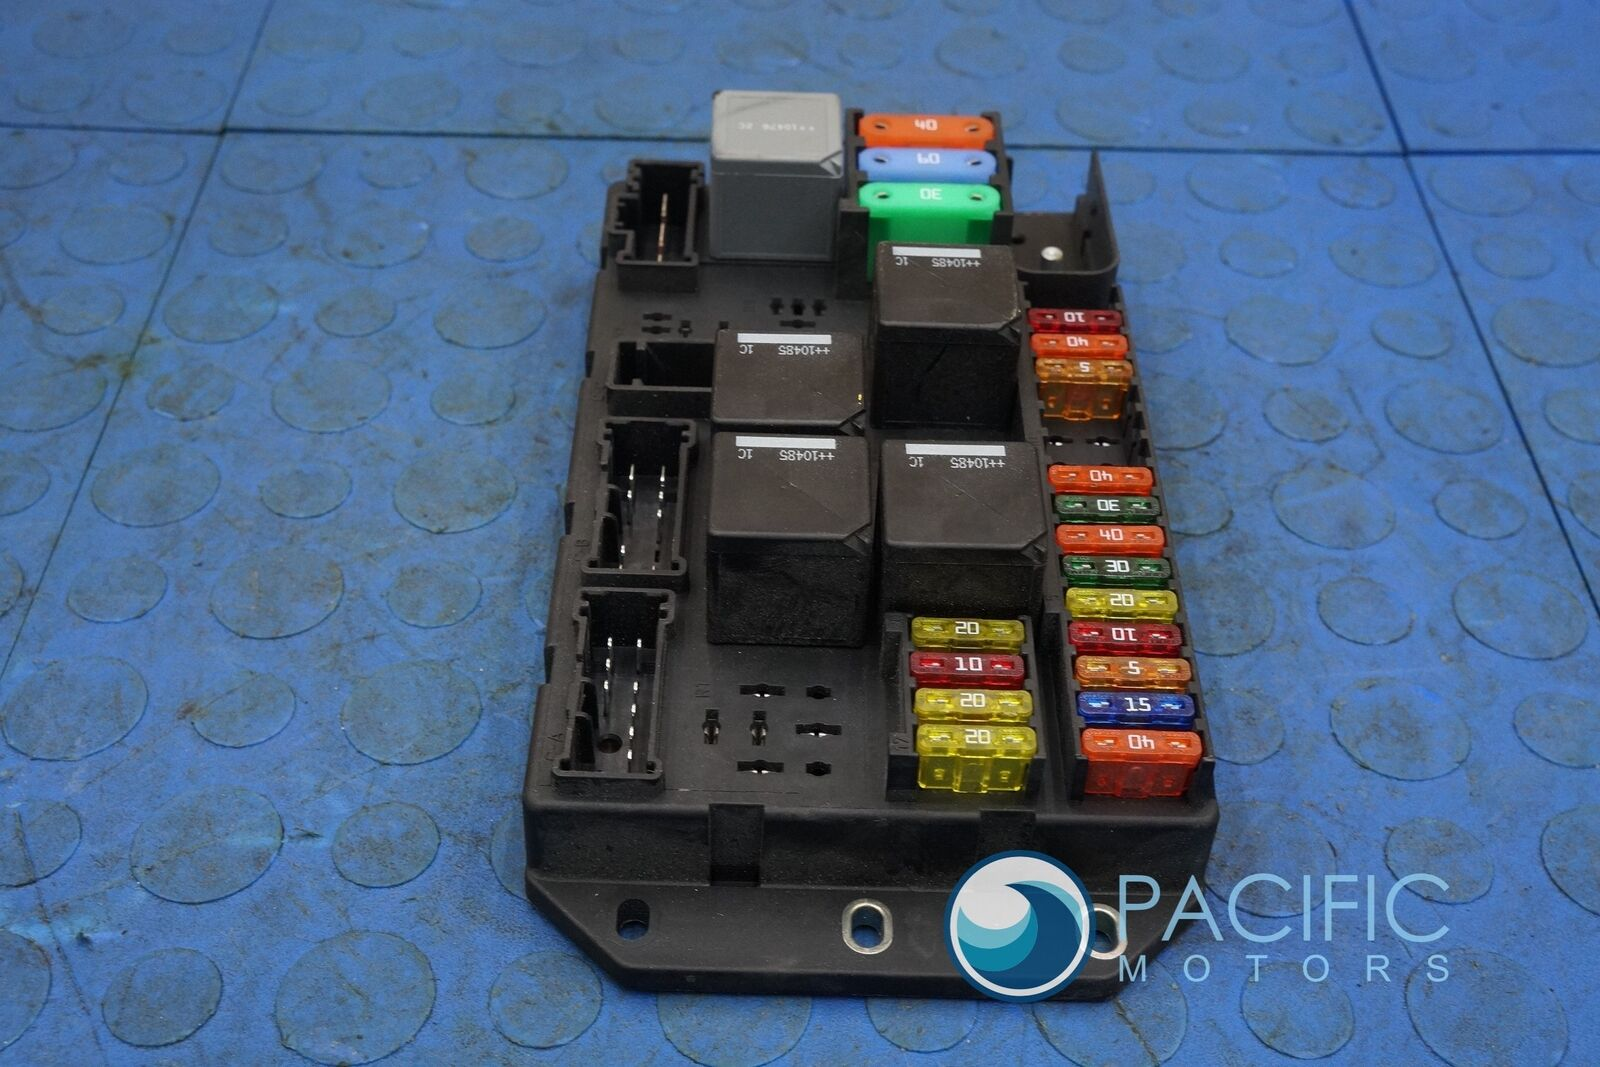 2011 jaguar xj fuse box schematic diagrams 2000 ford focus fuse box diagram  2011 jaguar fuse